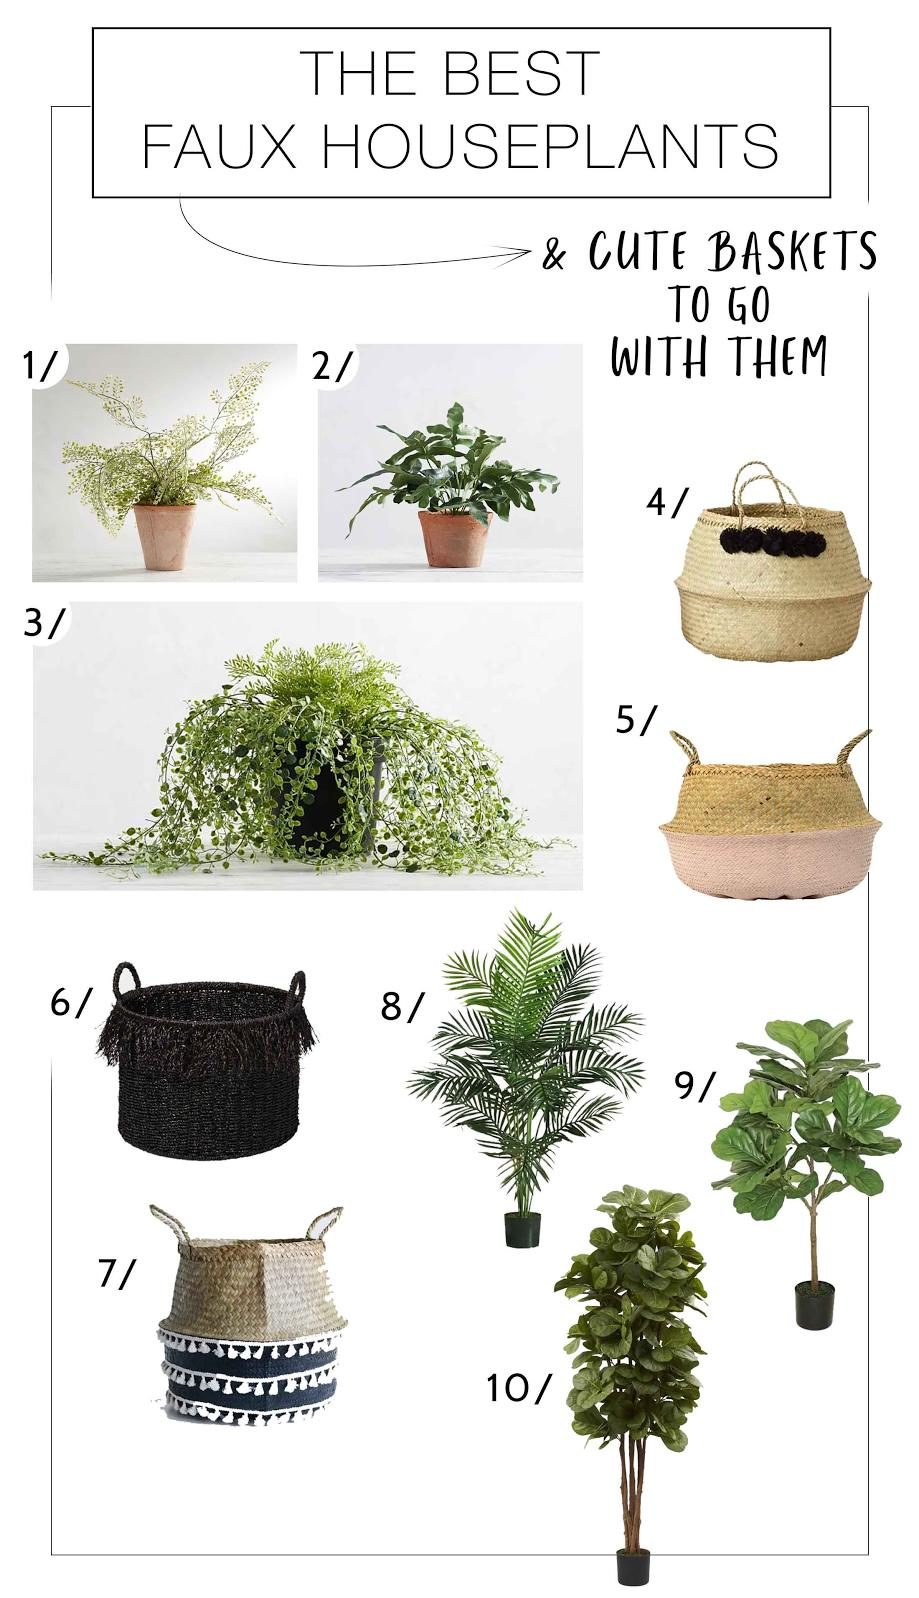 The easiest house plants to care for? The fake ones. Uh — we mean faux, faux house plants. We've got a list that look totally real —trust us.